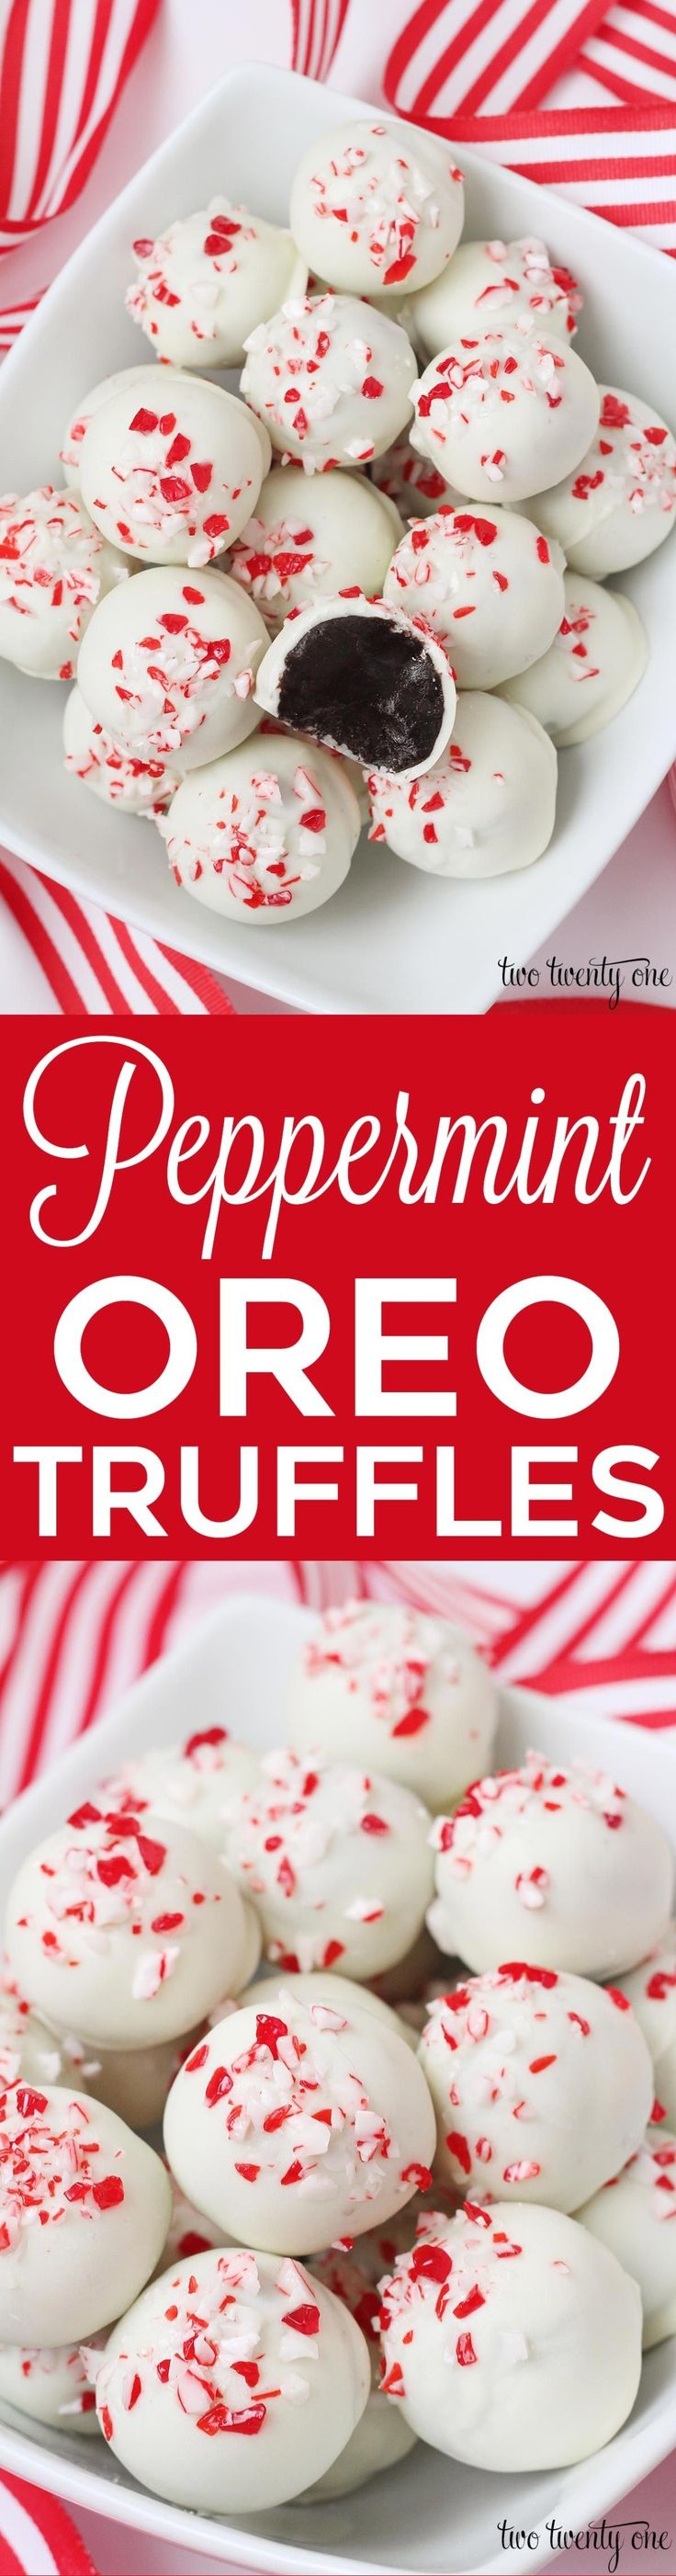 It's officially acceptable to start talking about Christmas! To celebrate this momentous annual occasion, I'm sharing these Peppermint Oreo Truffles.